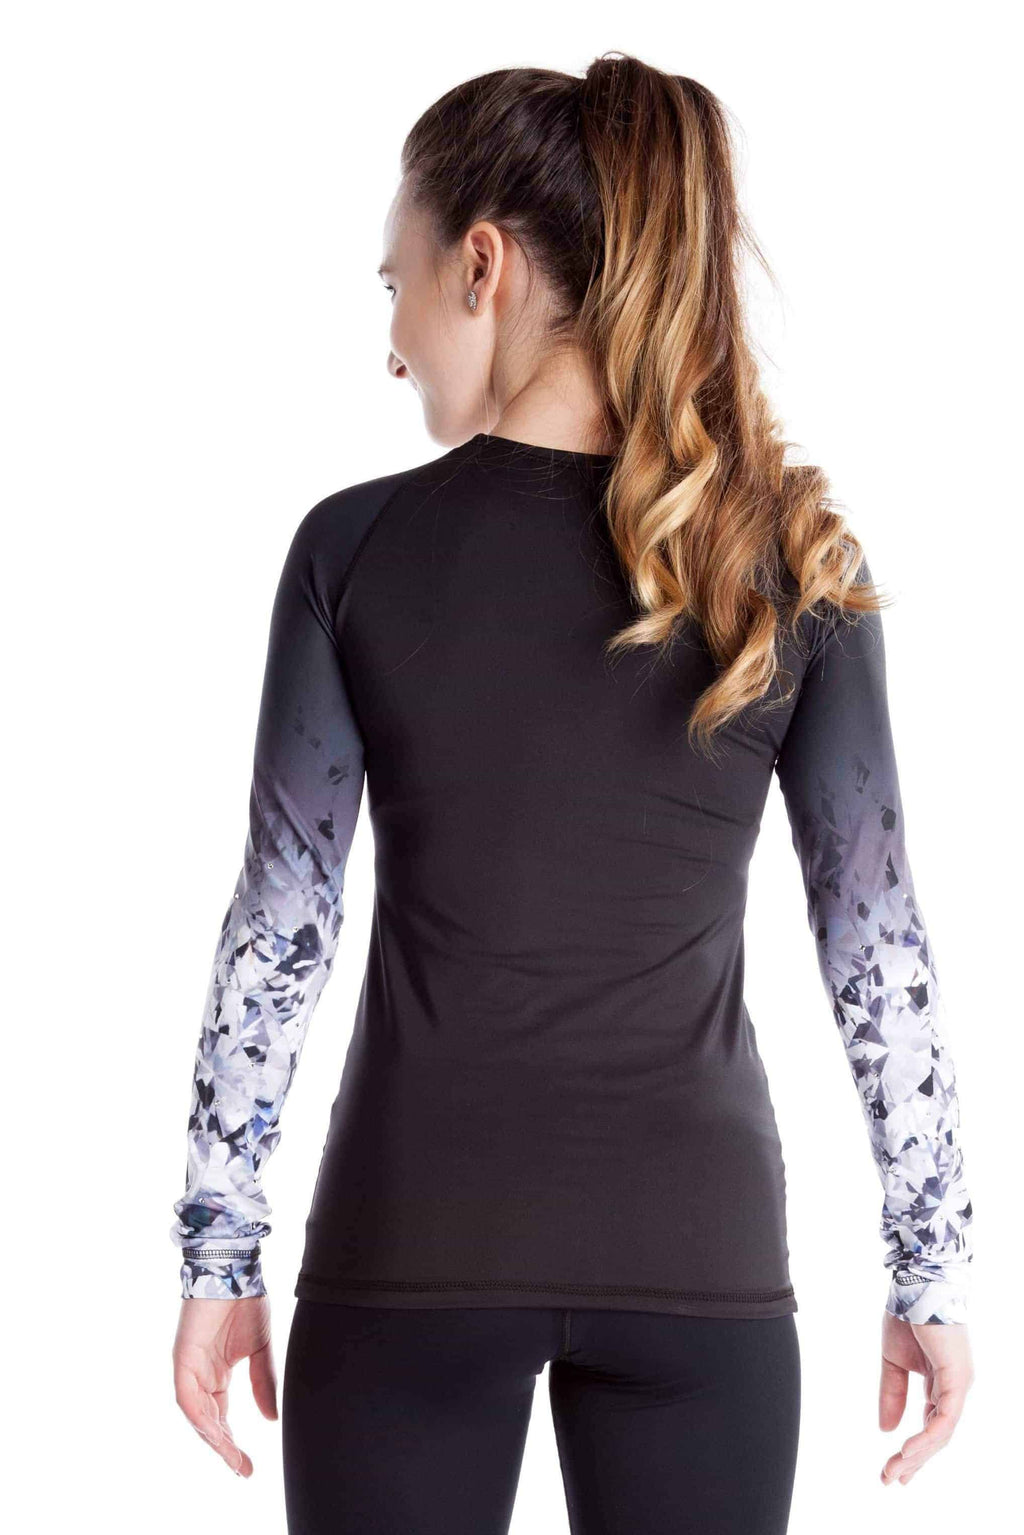 Shirt with Sublimated Sleeves - Black Crystal - Elite Xpression